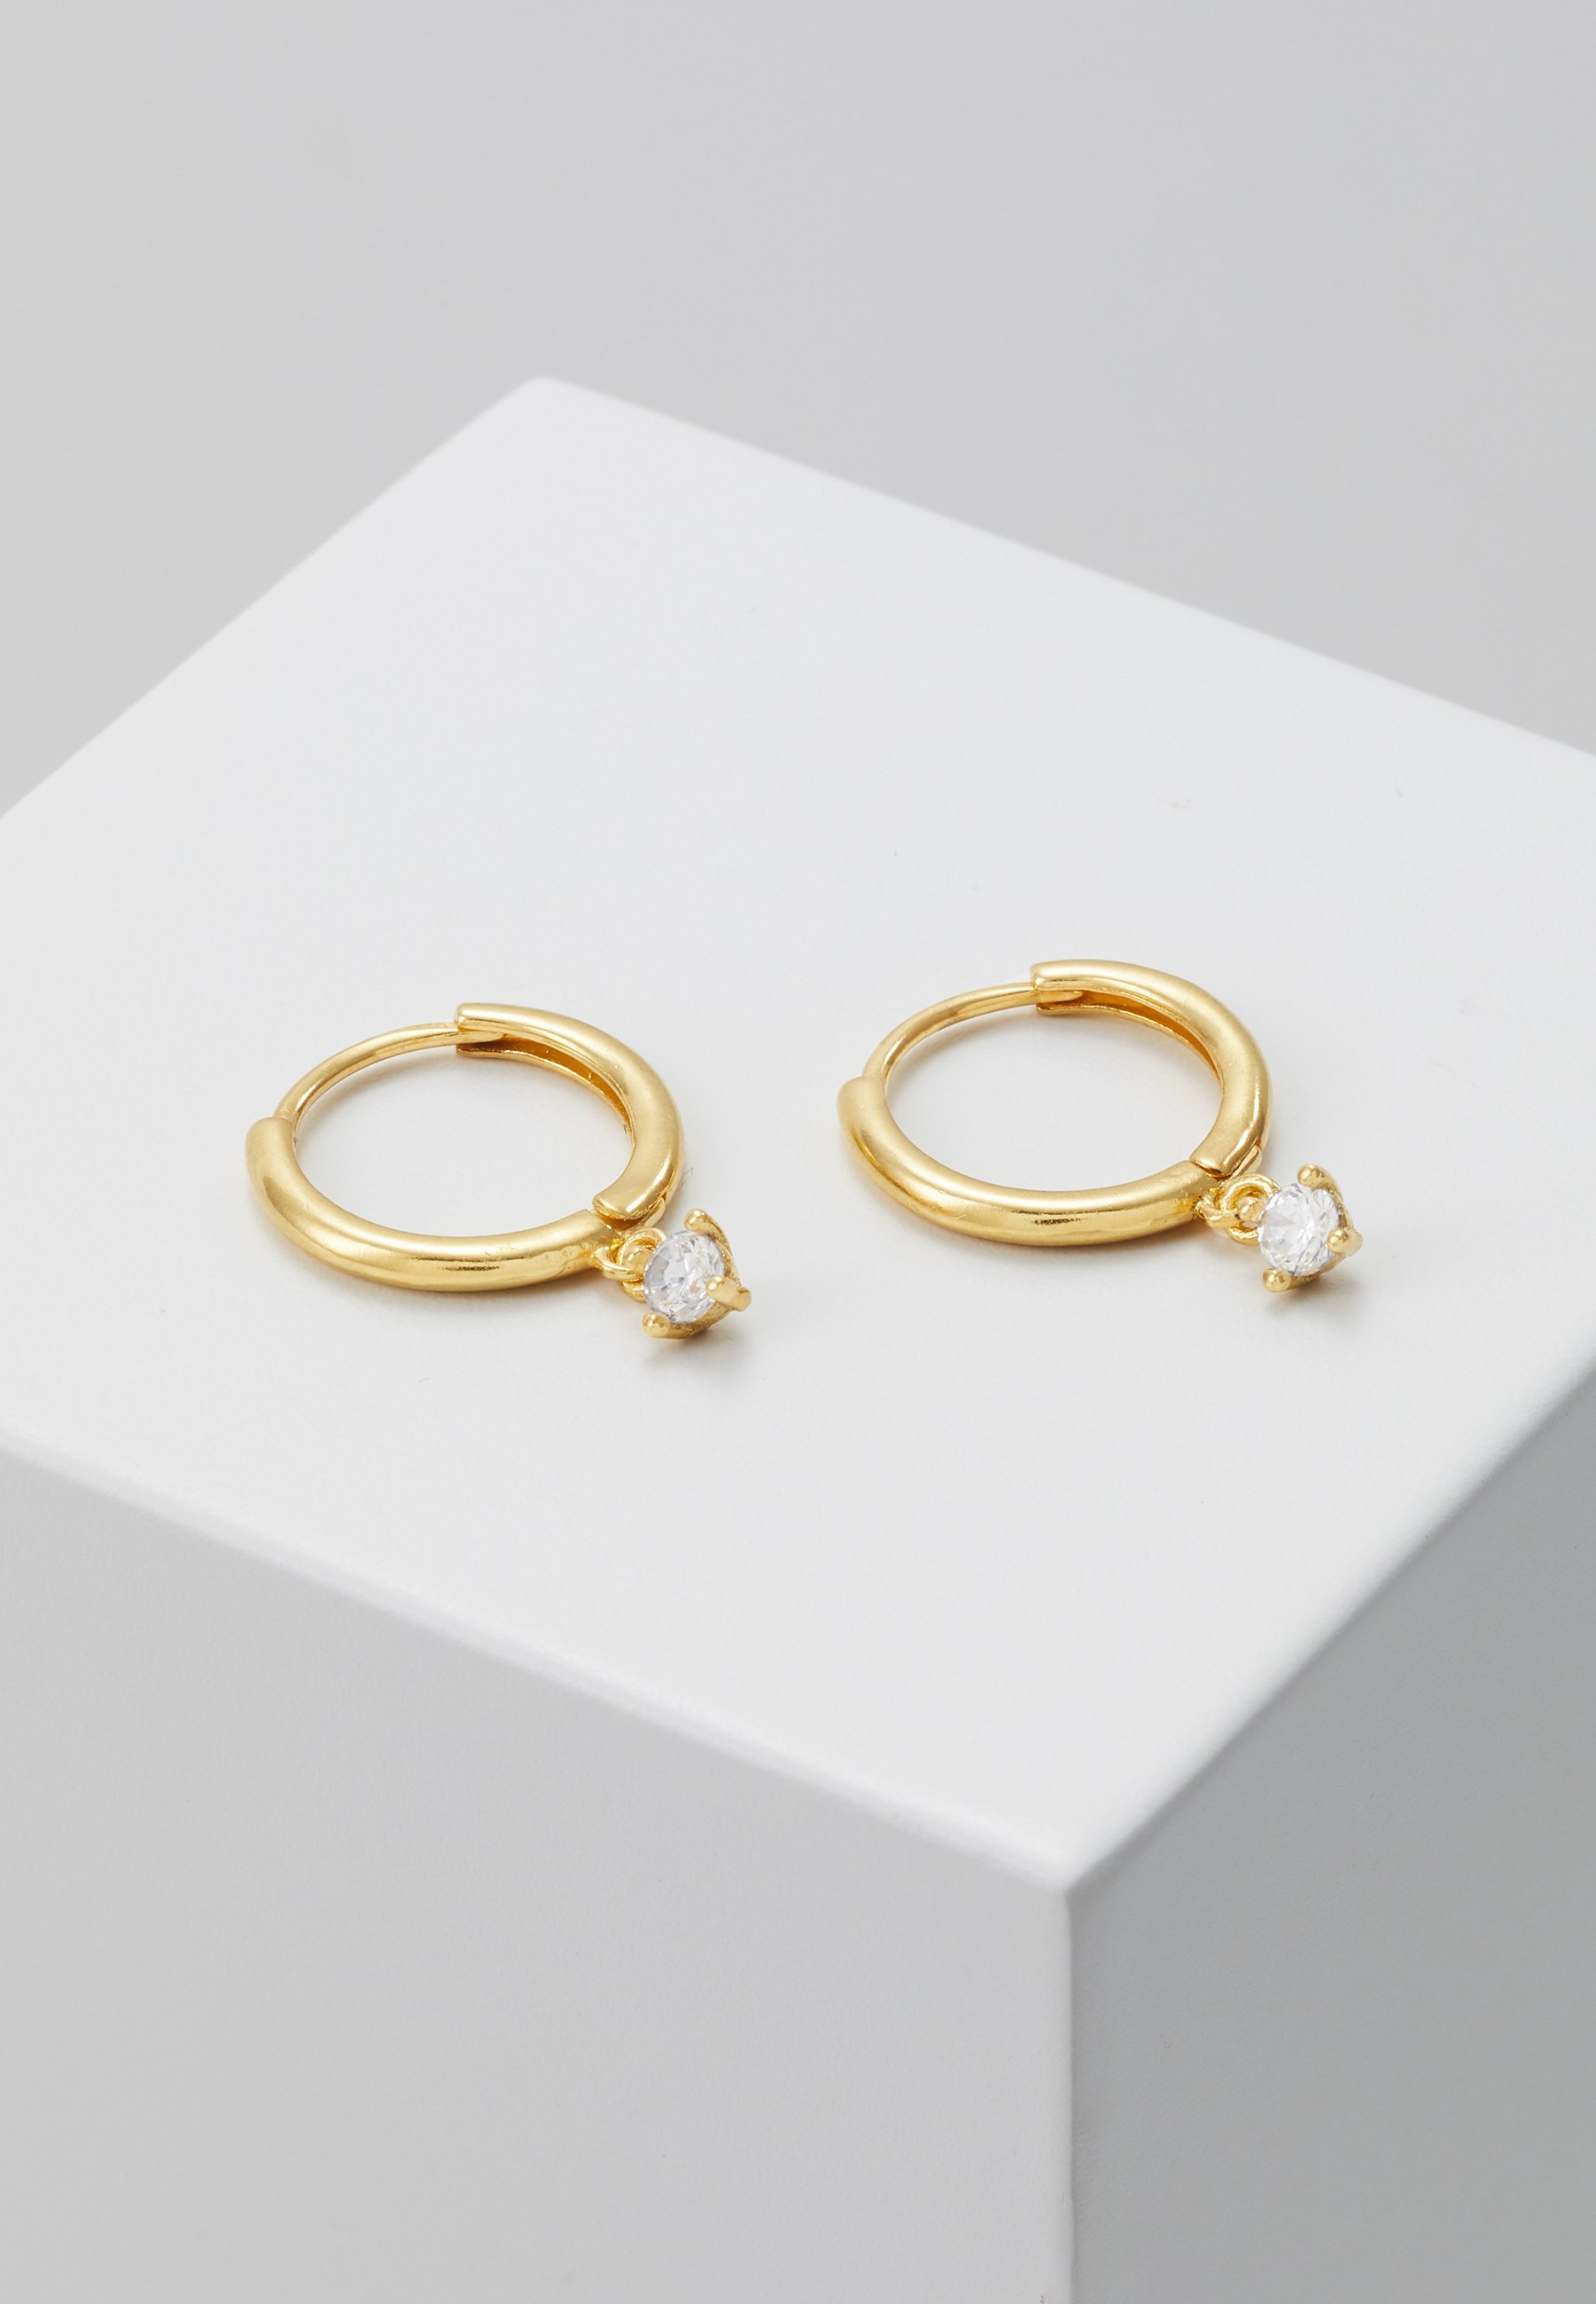 Classic Fast Delivery Accessories Astrid & Miyu MYSTIC DROP GEM HOOPS Earrings gold-coloured b5RYpgoit HUvYr0svO